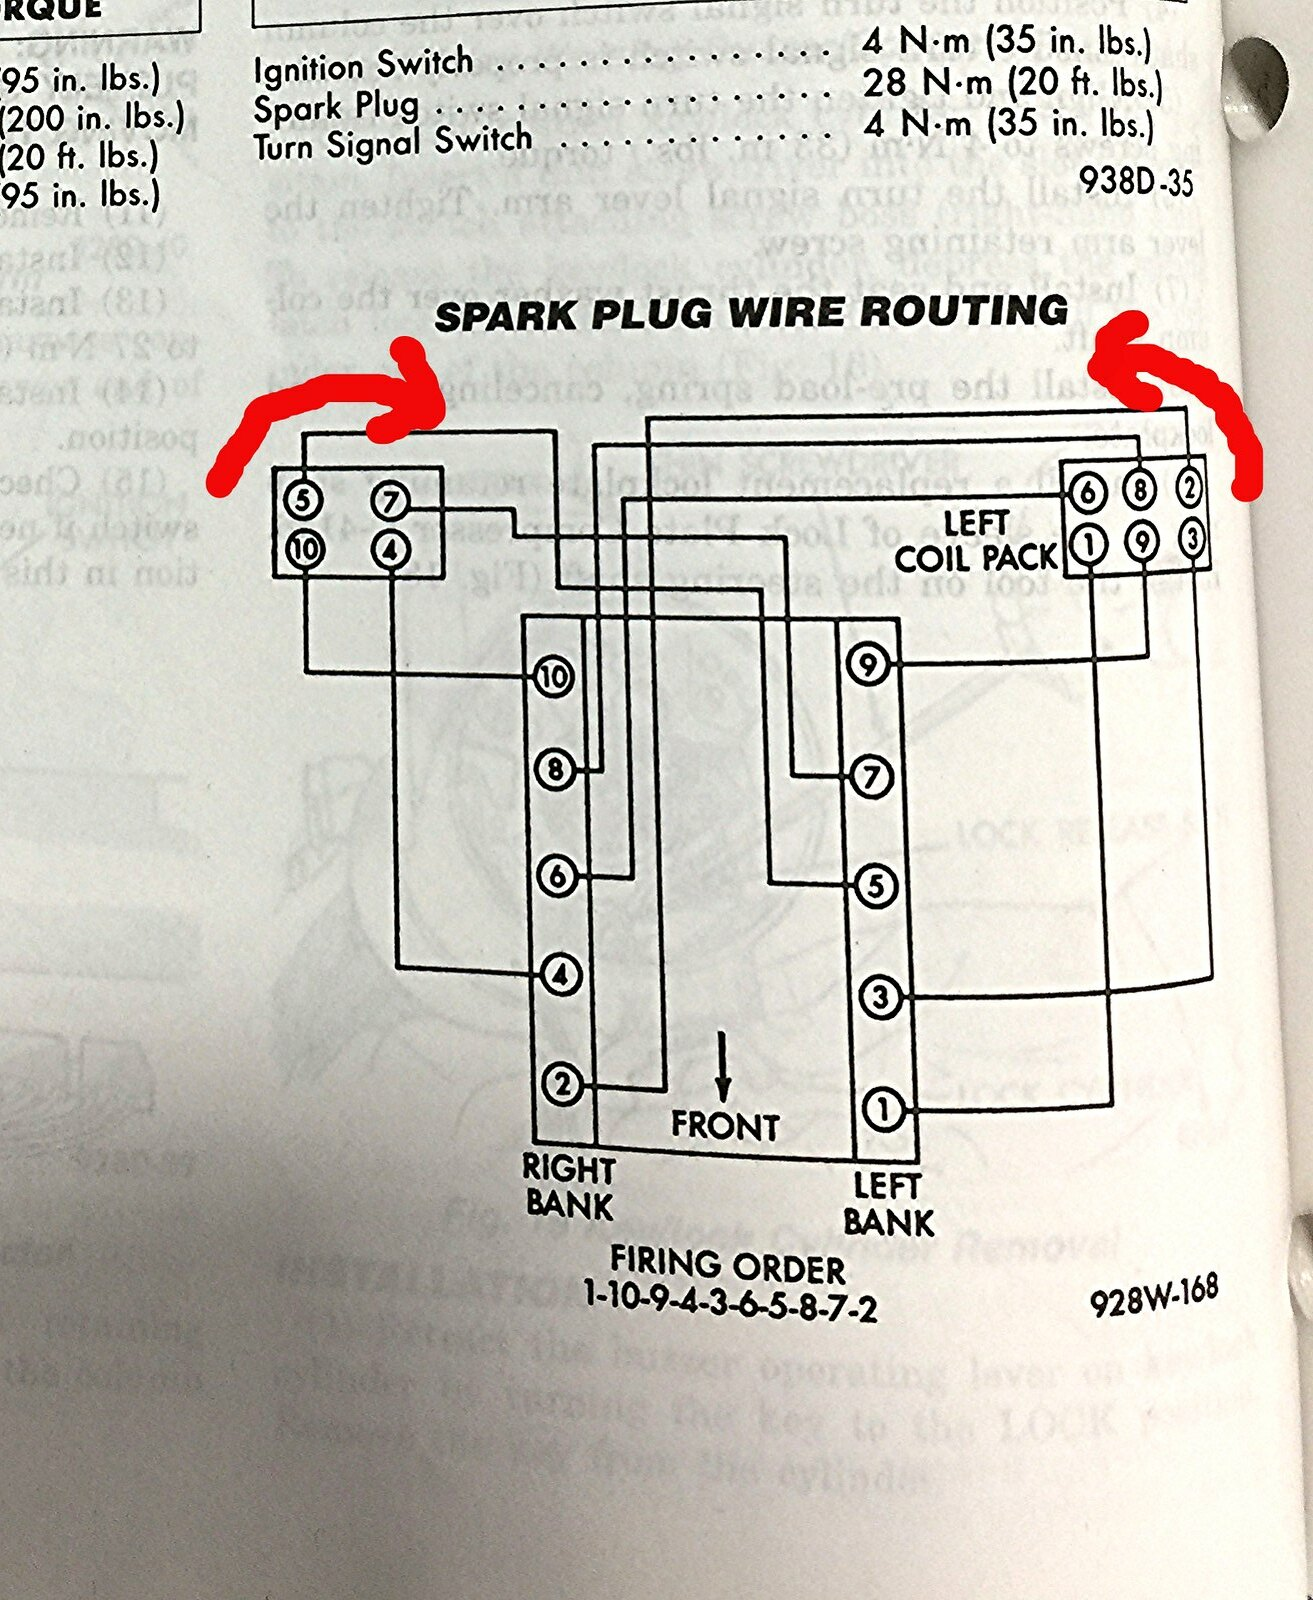 Gen 1 Plug Wire Routing Diagram [Archive] - Viper Owners Association